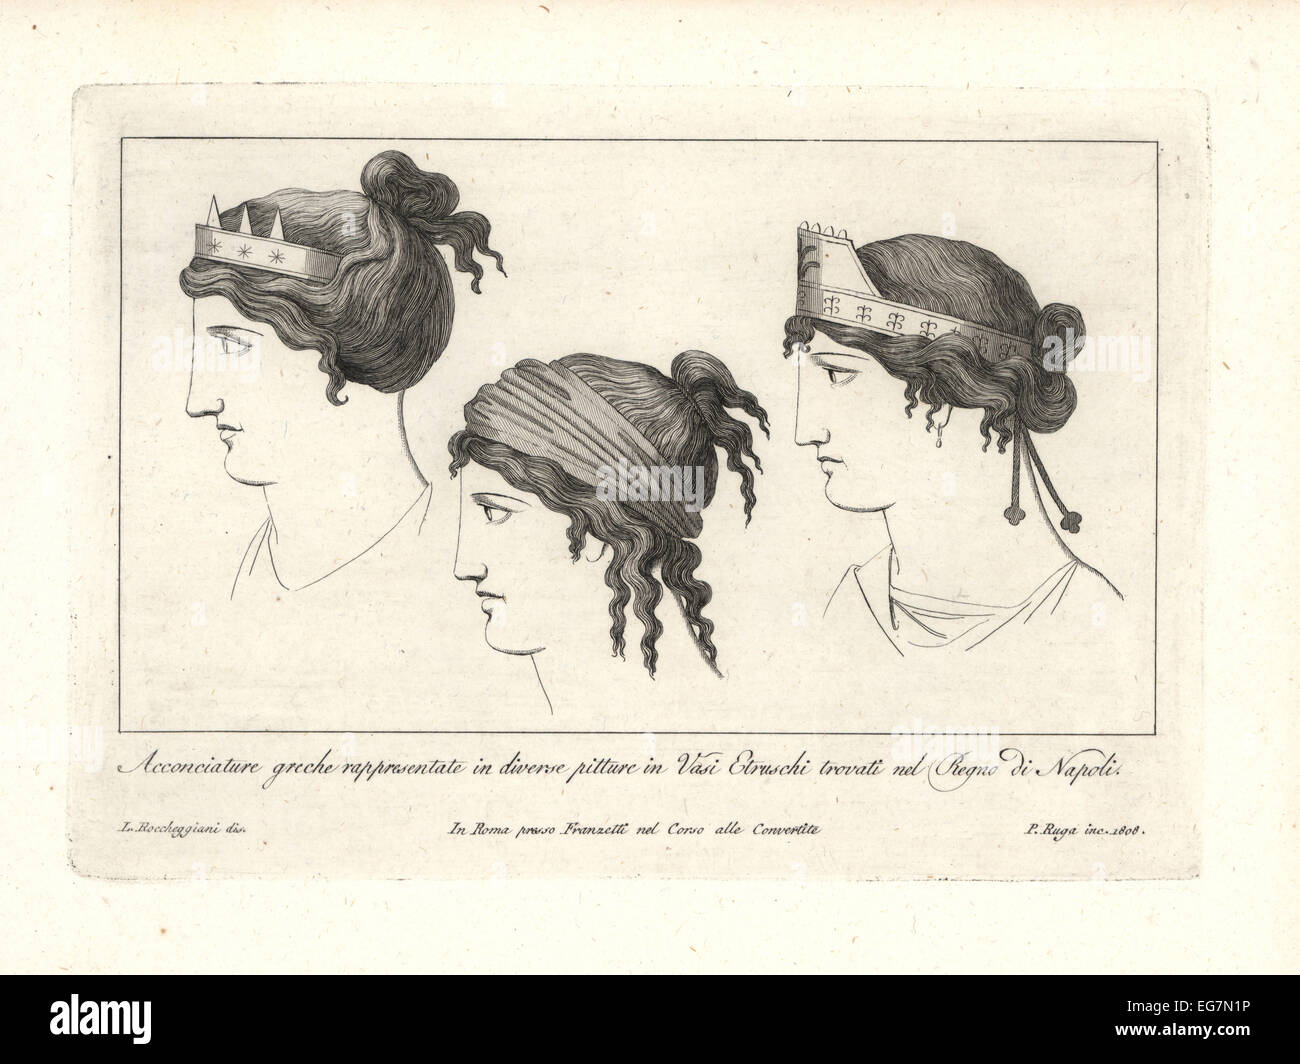 Greek hairstyles and tiaras from Etruscan vases found in the Kingdom of Naples. - Stock Image